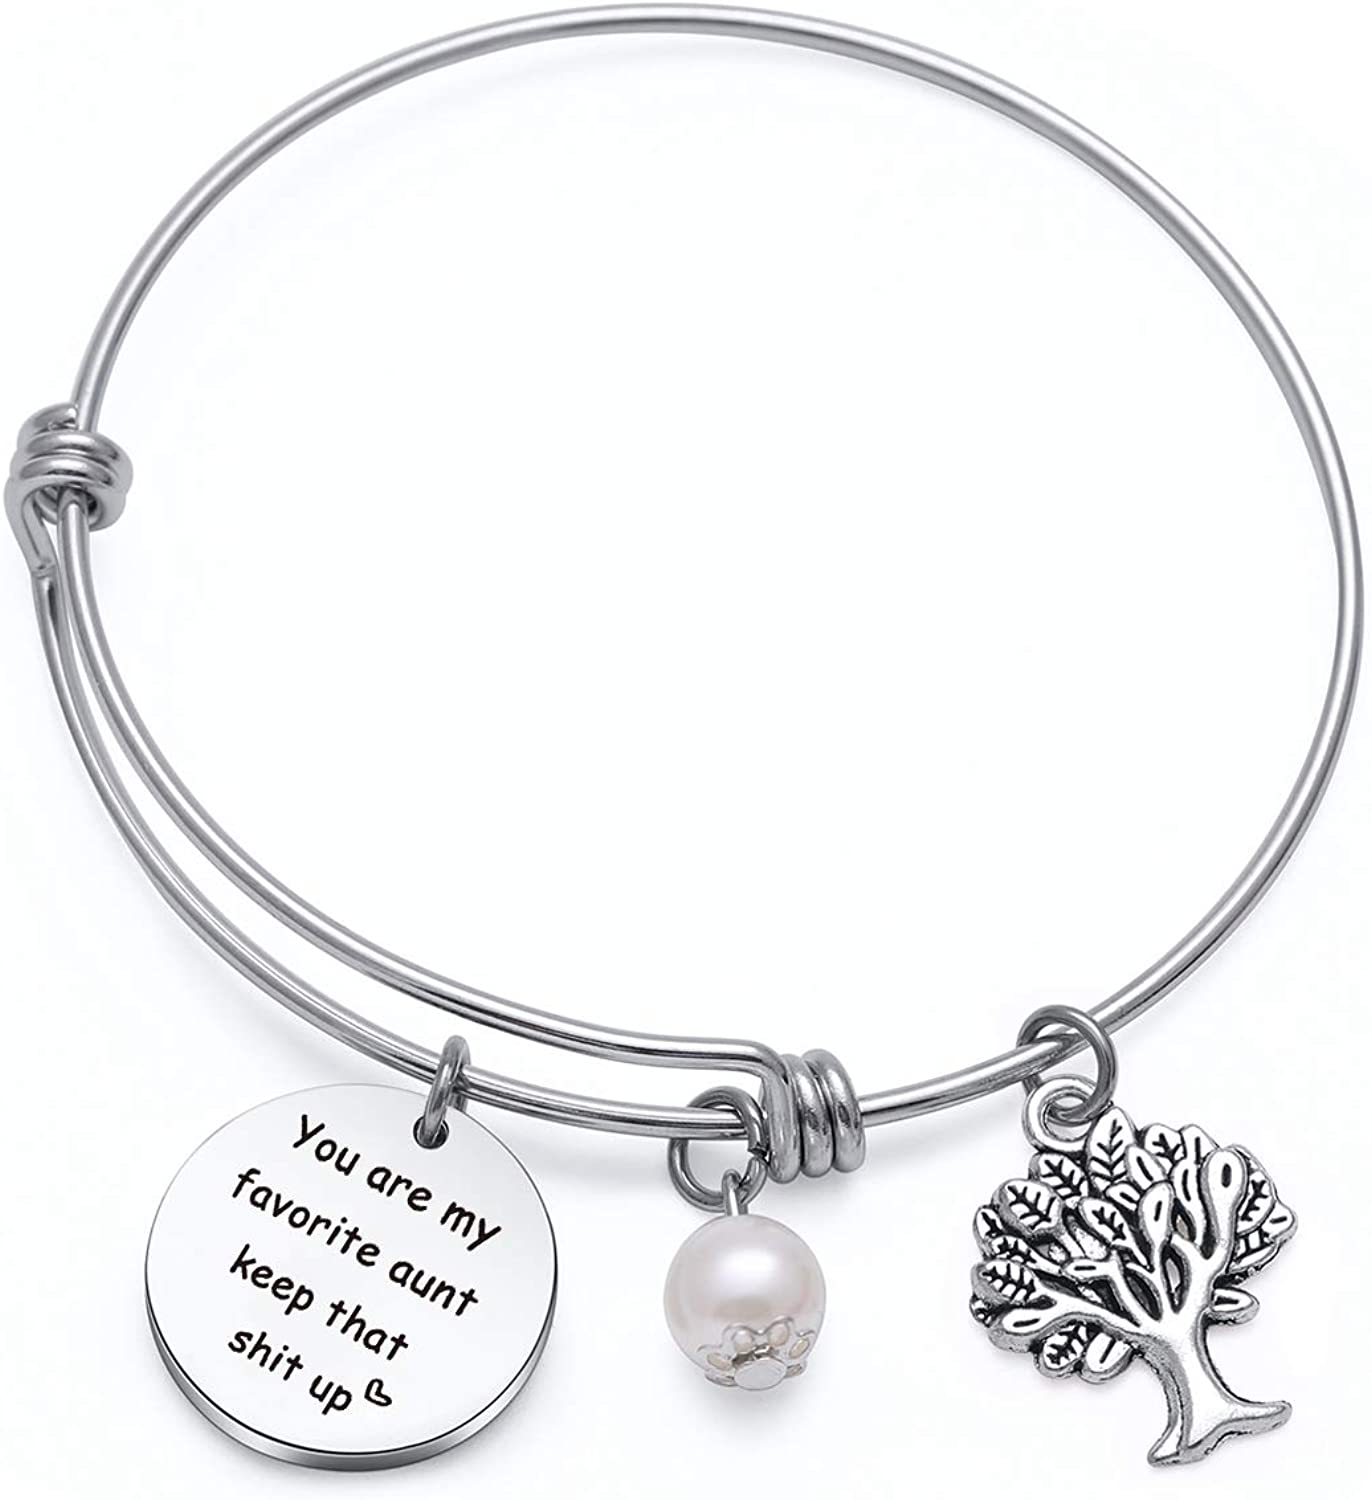 You are My Favorite Aunt Bracelet For Auntie Gifts Sisters Aunt Christmas Birthday Gift Keychain